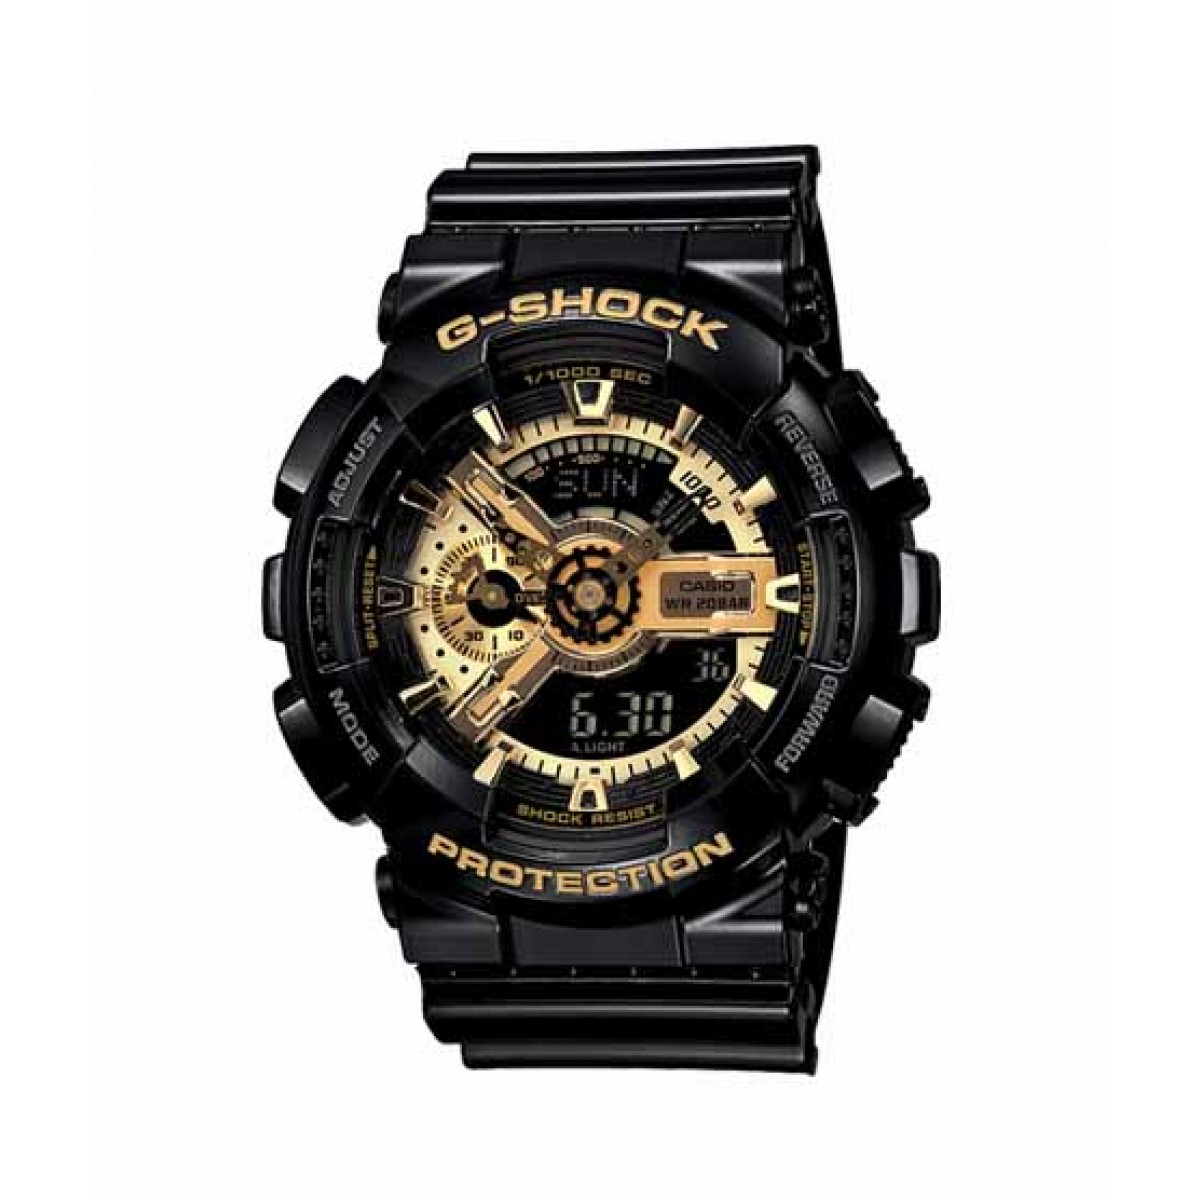 4341cbfb266 Casio G-Shock Men s Watch (GA110GB-1A) Price in Pakistan